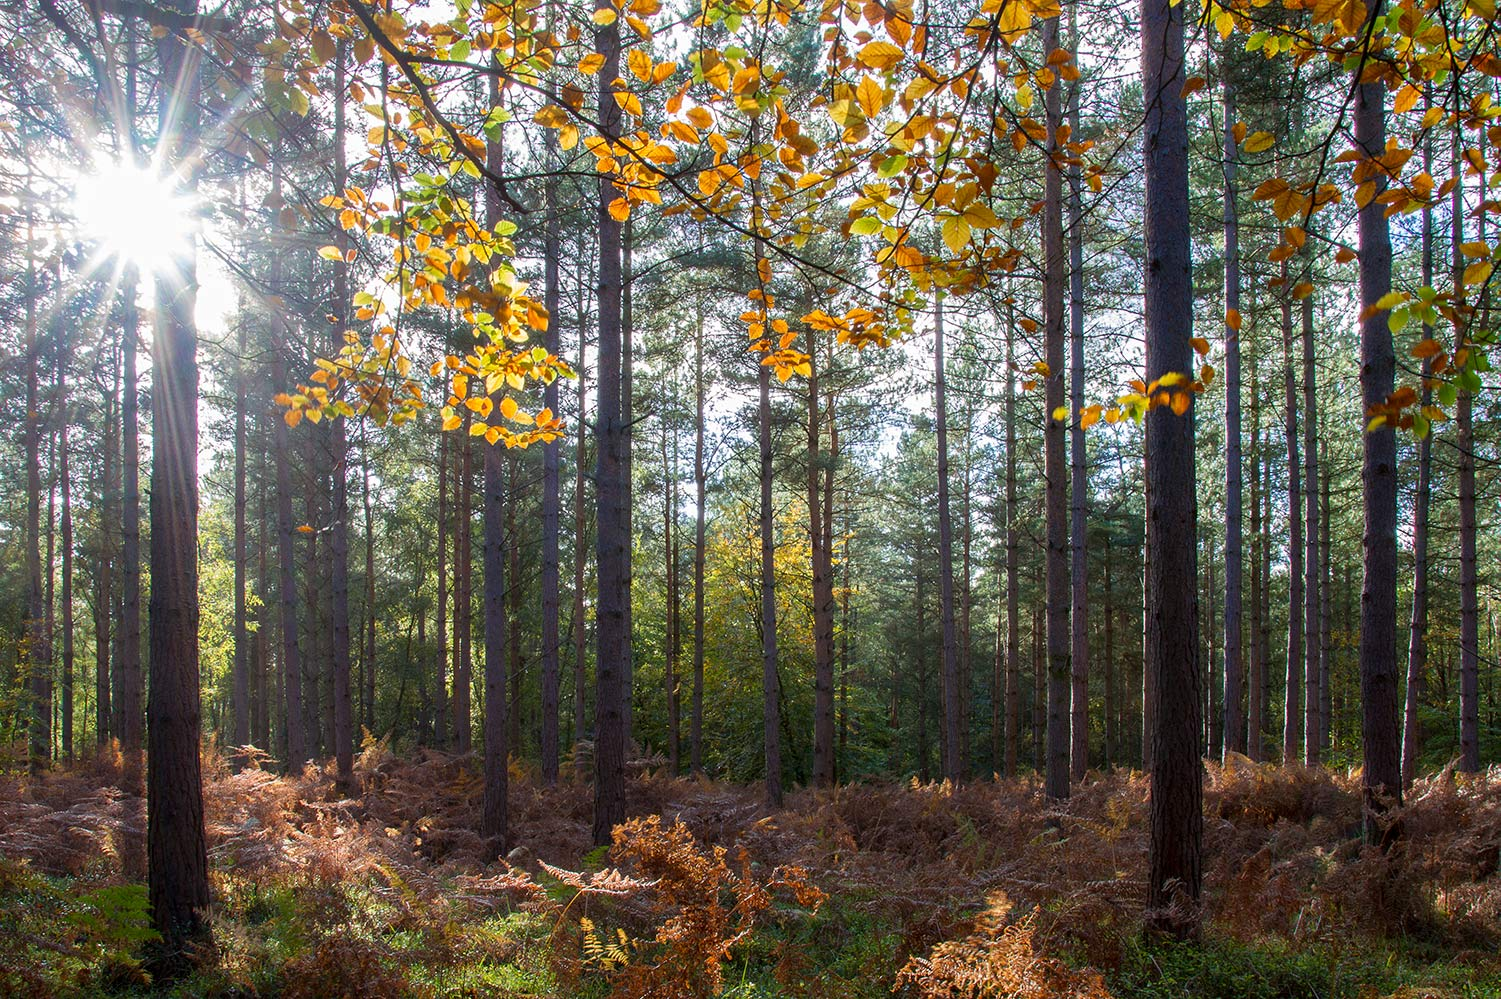 The sun shining through the autumn trees in The New Forest lights up the golden coloured leaves and woodland.